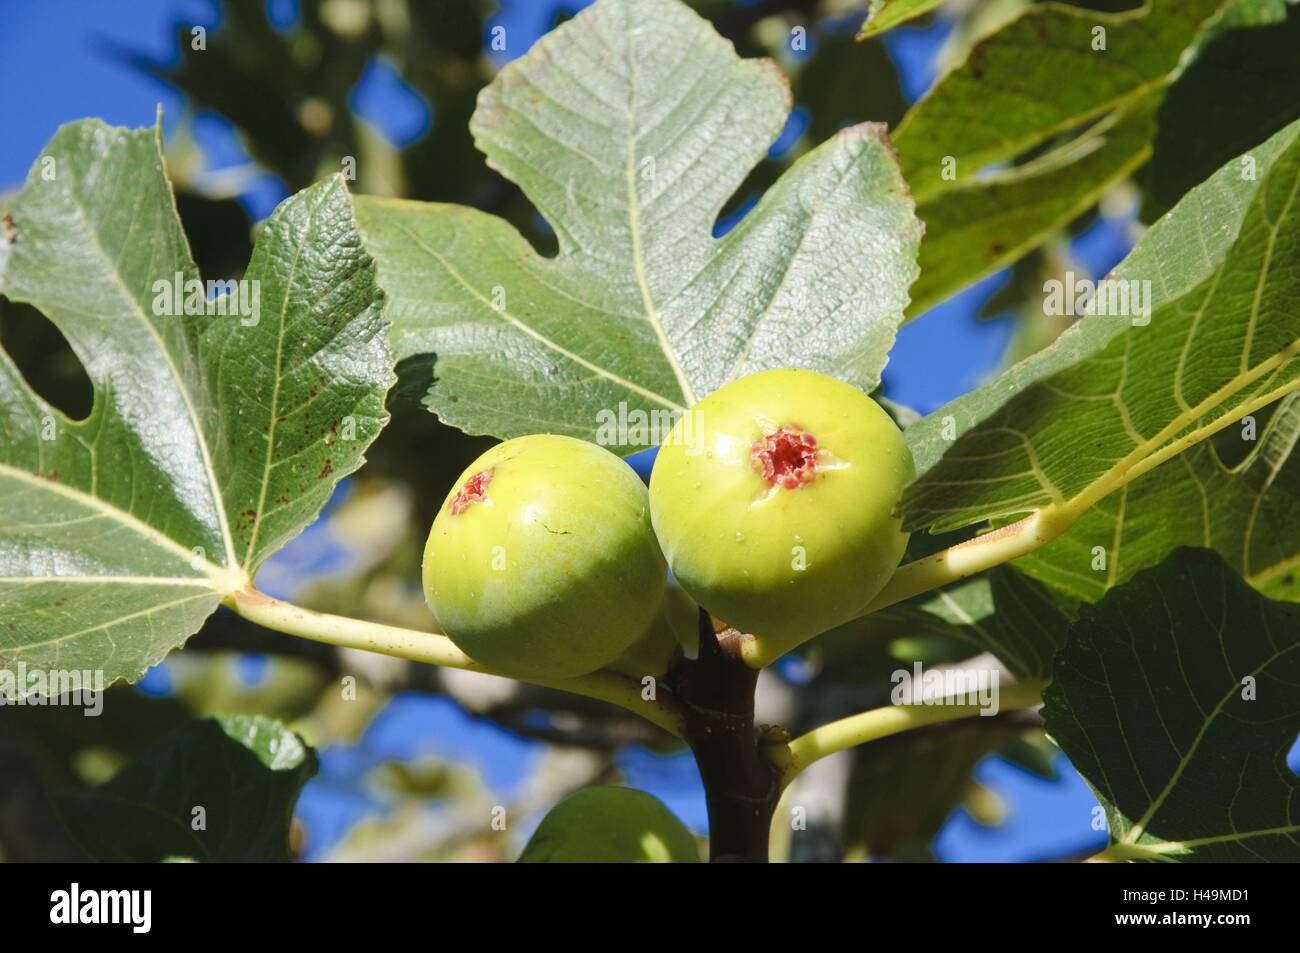 Figs tree stock photos figs tree stock images alamy - Olive garden westminster maryland ...